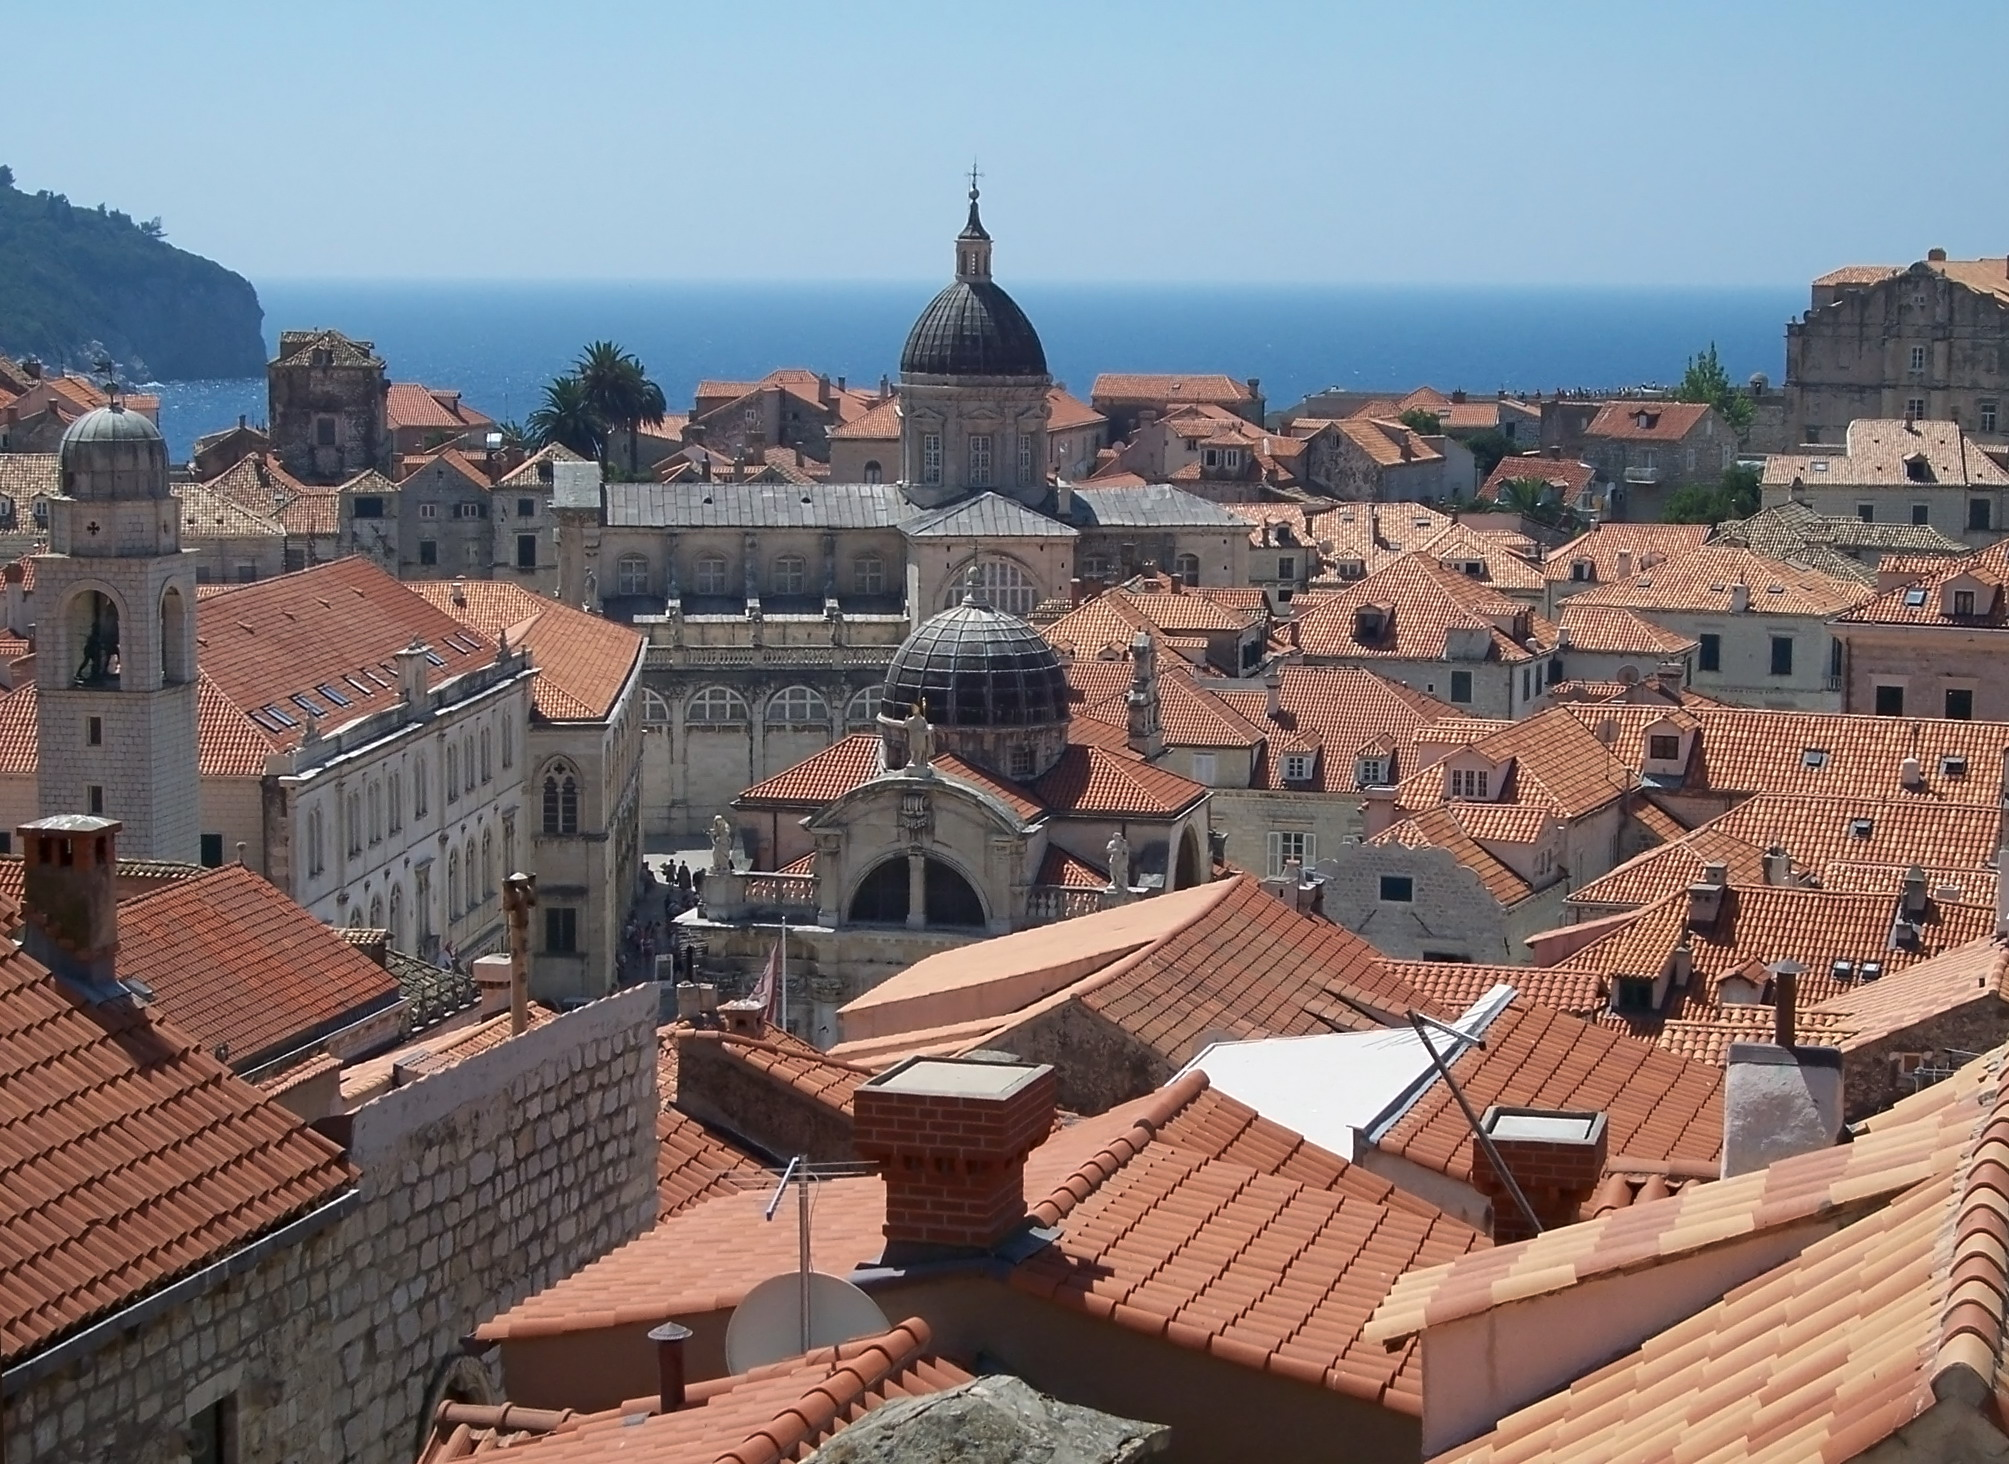 A view of the old city of Dubrovnik. from Wiki Commons